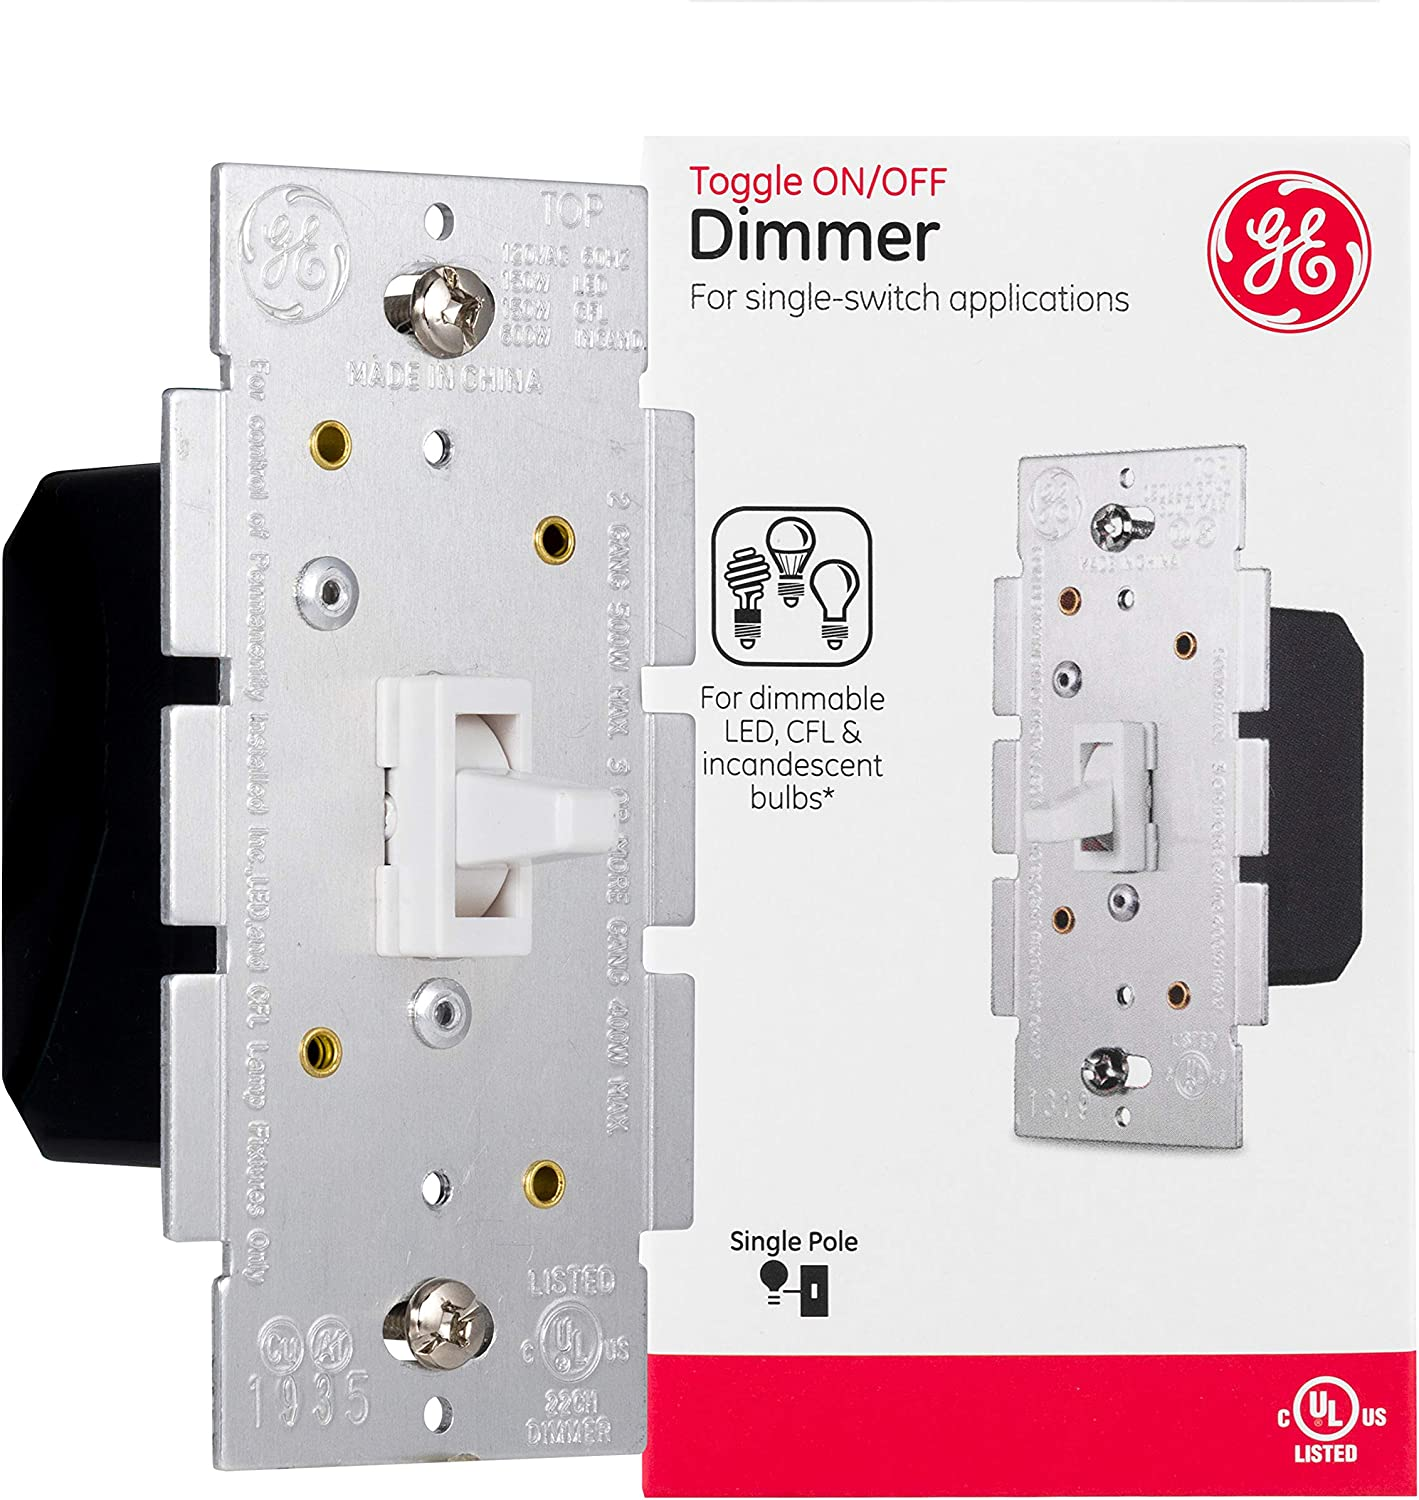 GE Light Switch Dimmer, Single Pole Toggle Dimmer, On/Off Dimmable Wall Switch, Dimmable LED, CFL, Incandescent Bulbs, UL Listed, White, 18025